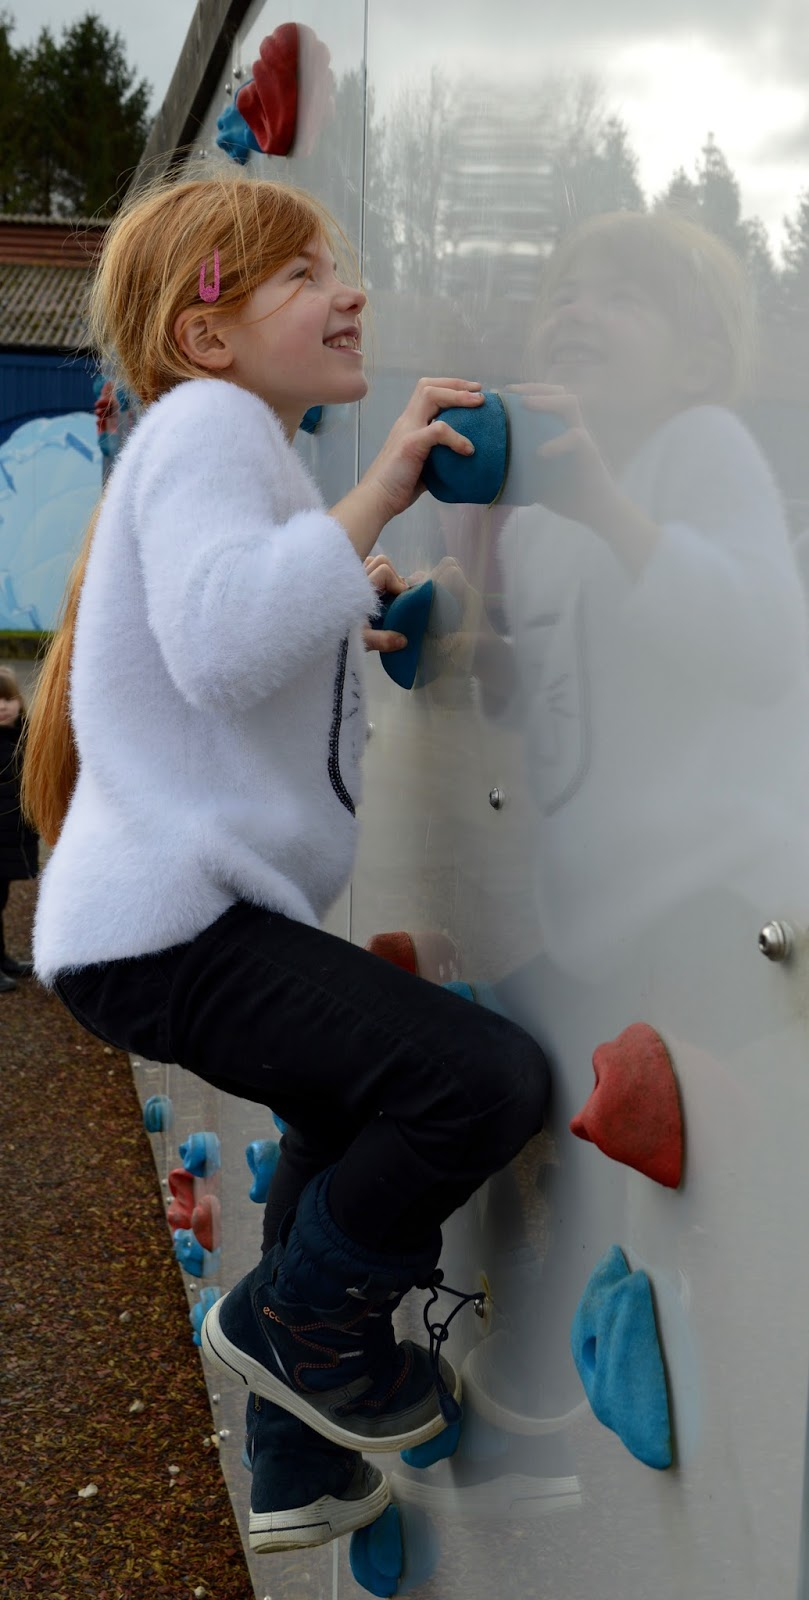 Visiting Angry Birds Activity Park at Lightwater Valley, North Yorkshire - climbing wall